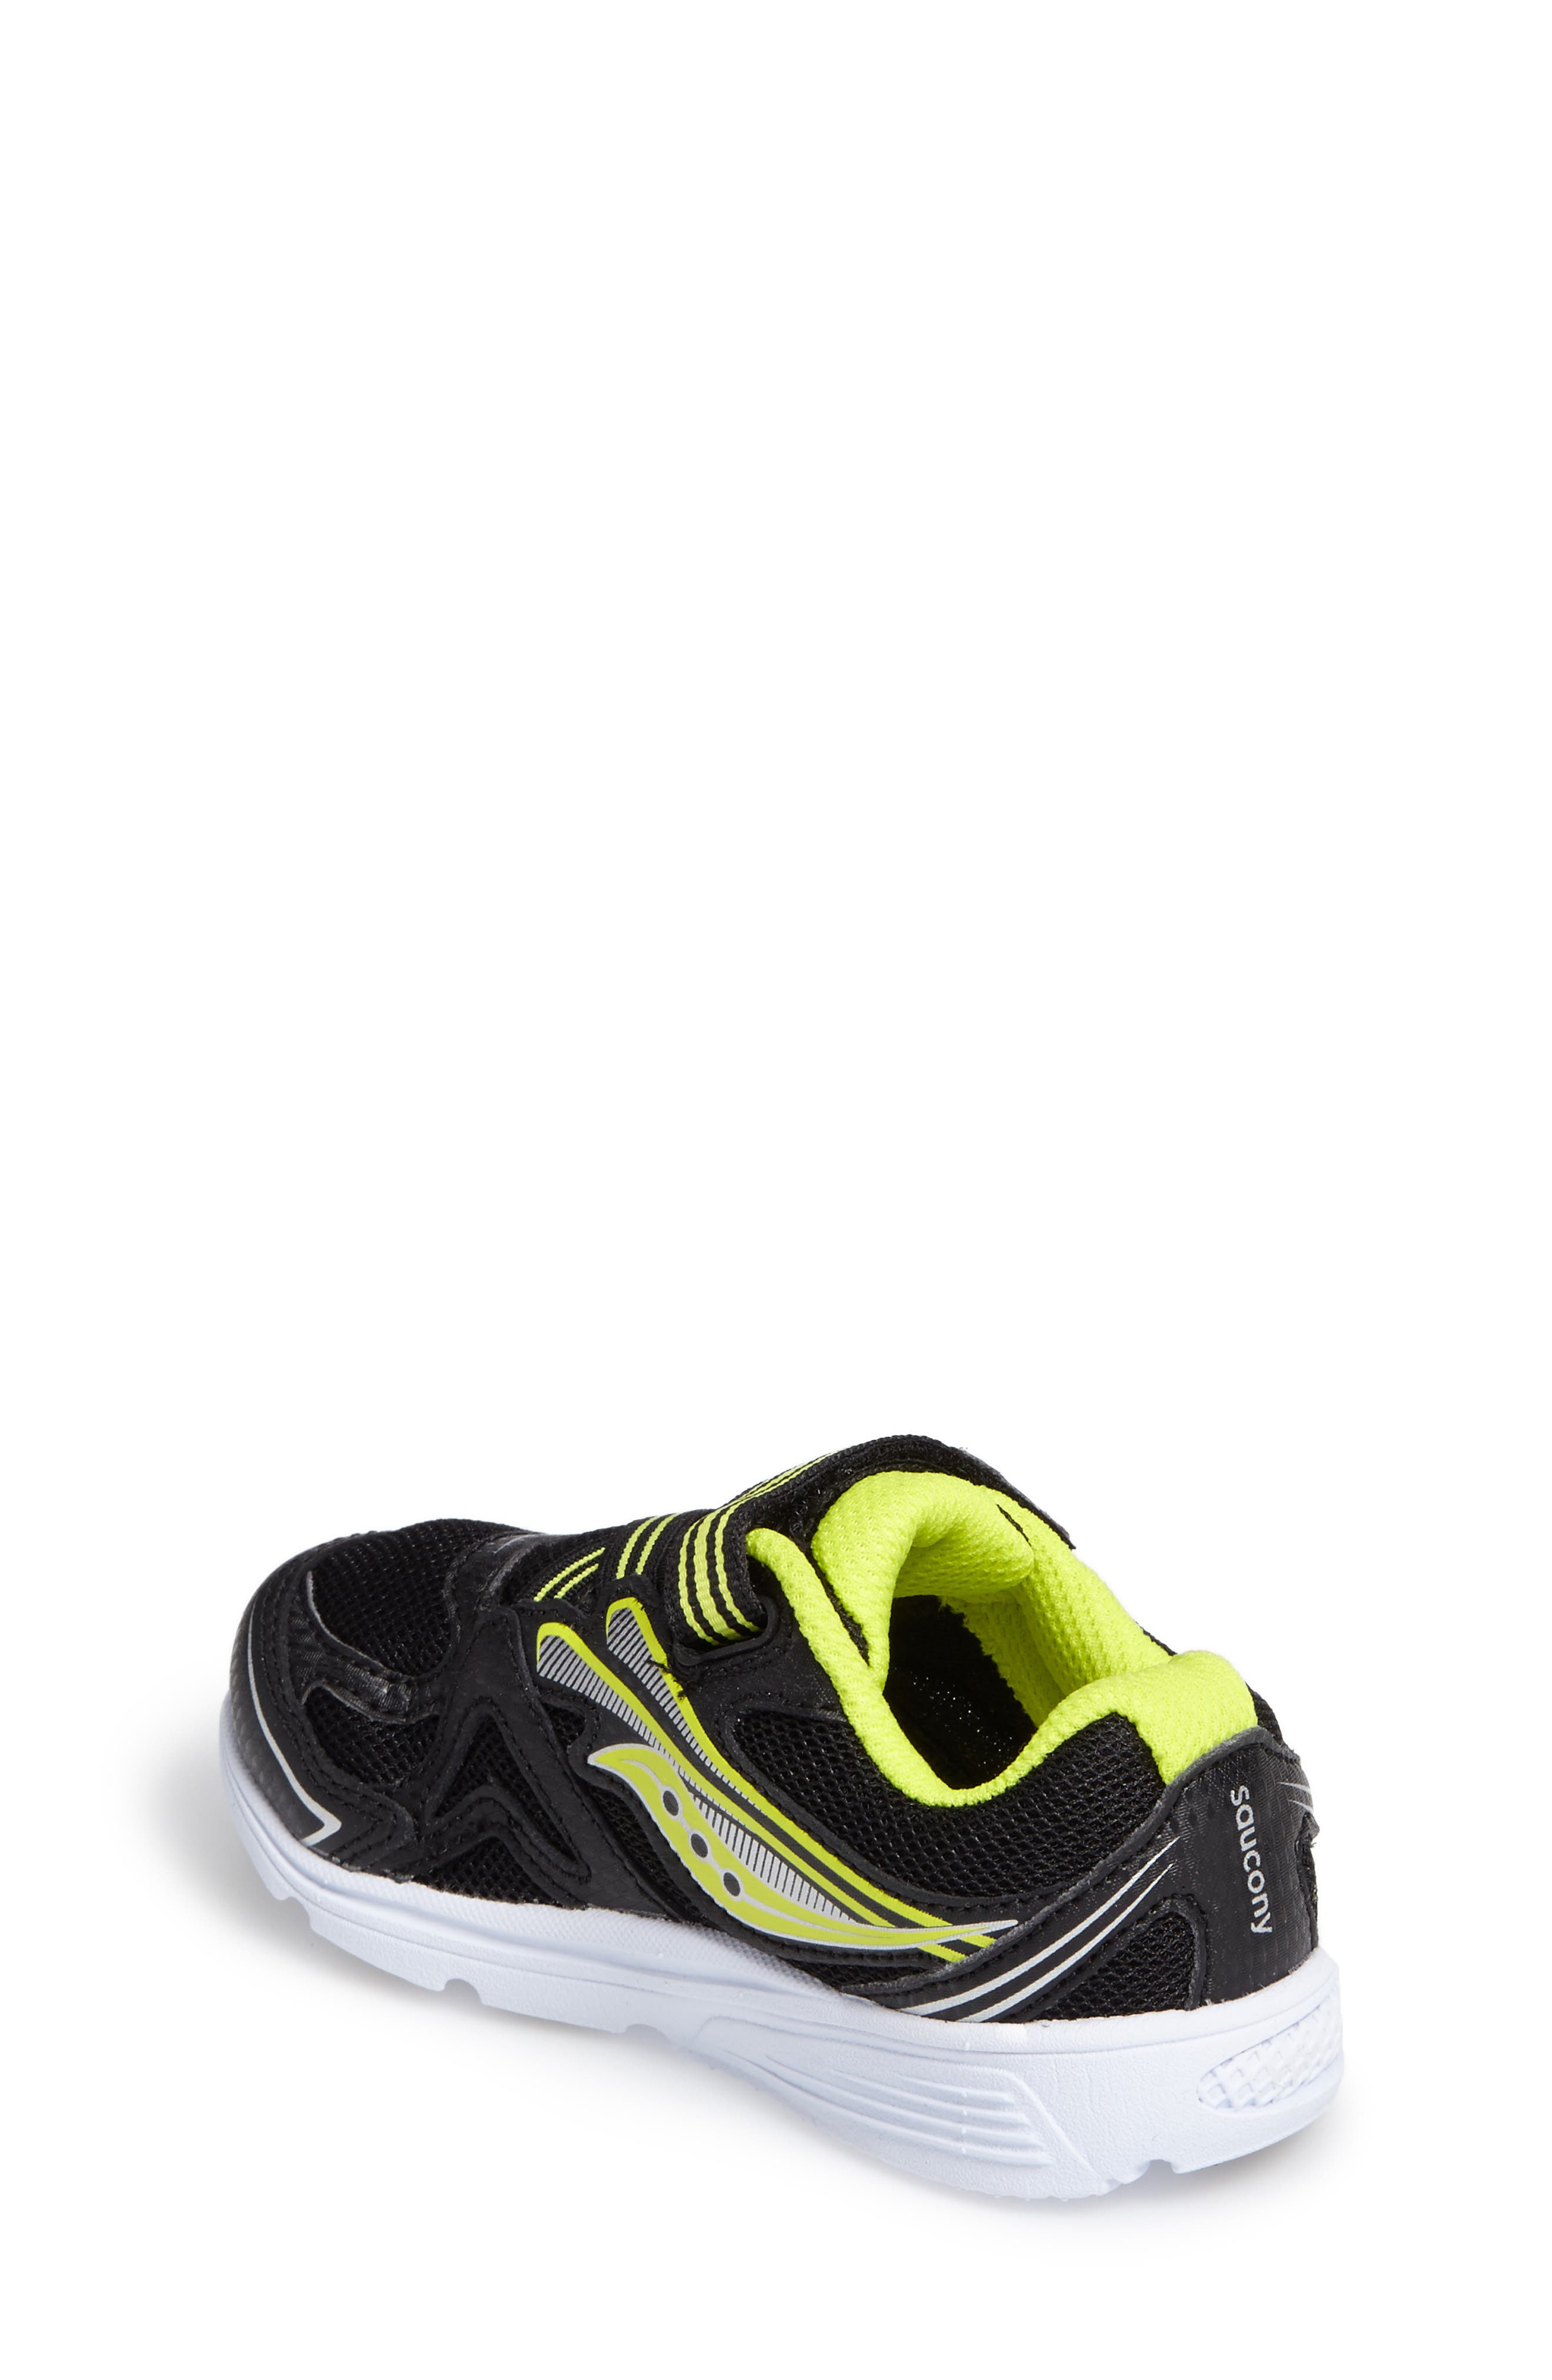 Baby Ride Sneaker,                             Alternate thumbnail 5, color,